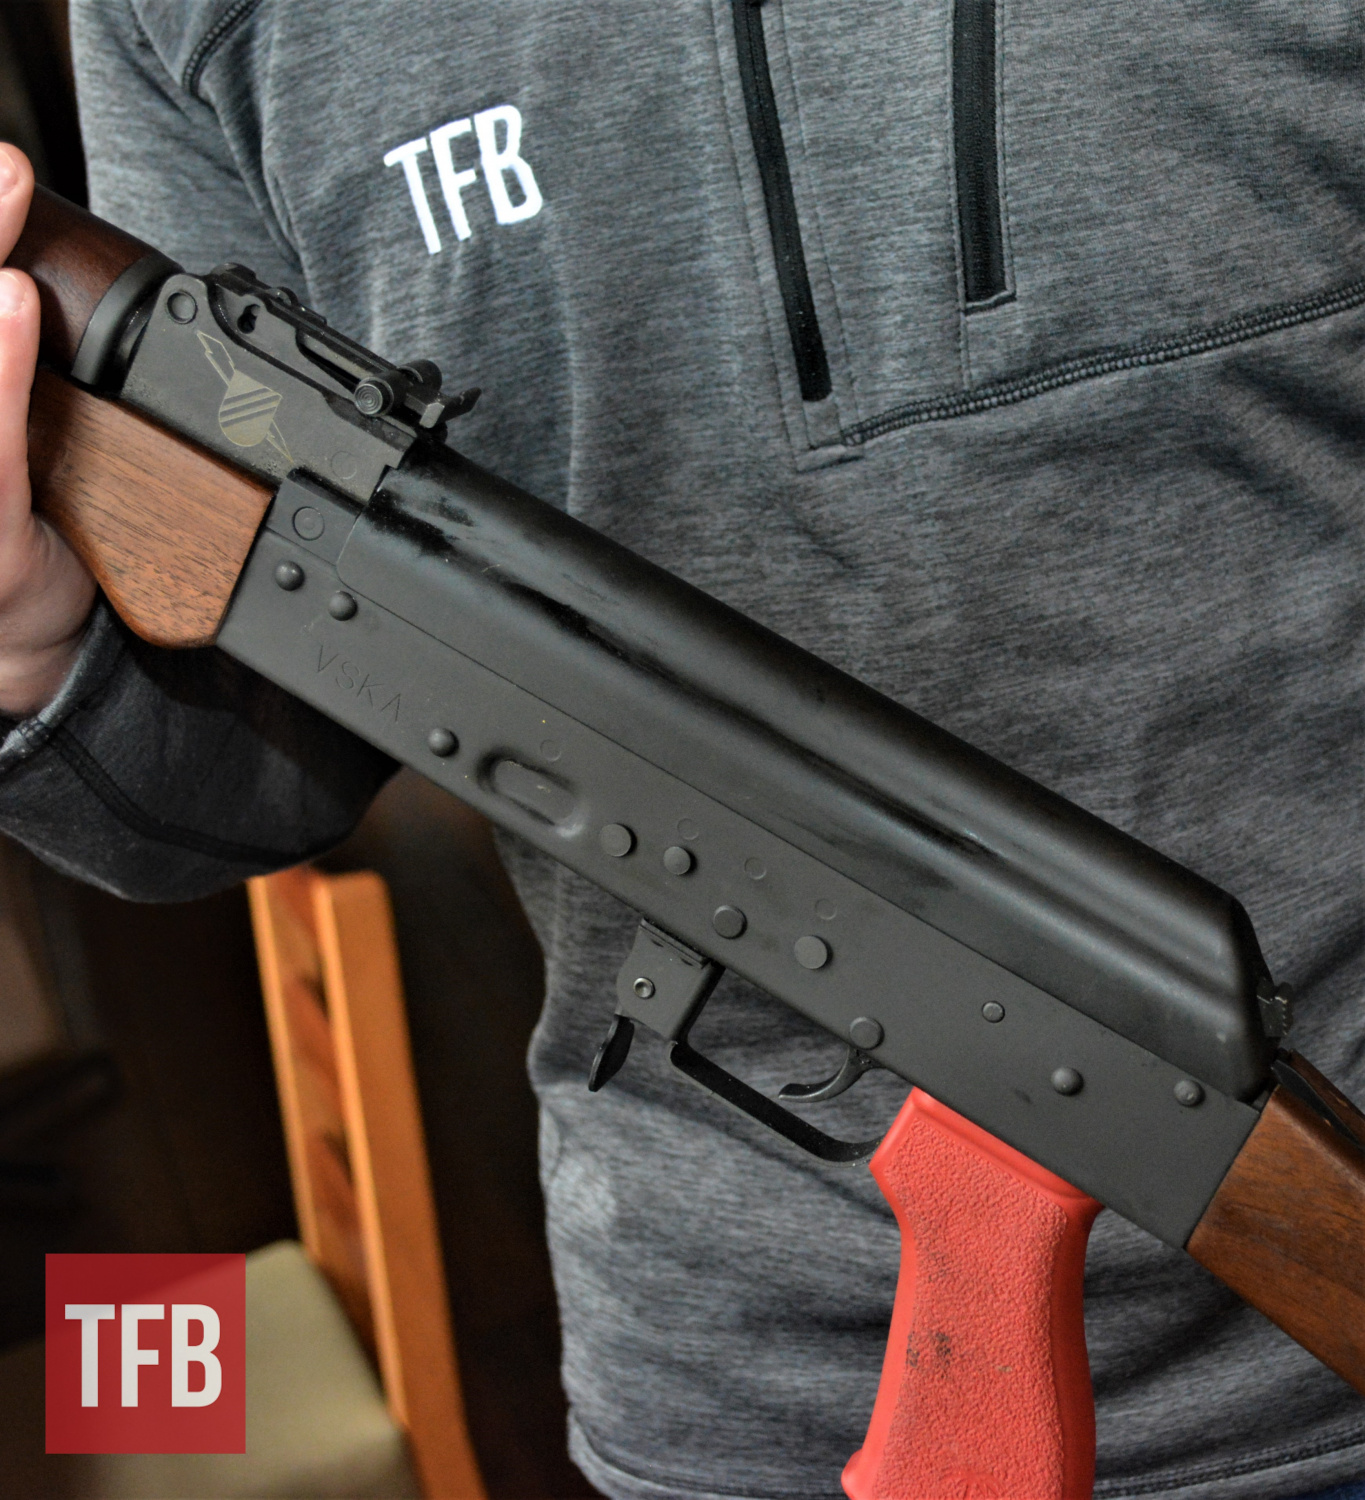 Century brought one of the first-run Thunder Ranch AKs to GunFest 2021, and you'd be hard-pressed to tell that it had more than 10,000 7.62 rounds through it already!